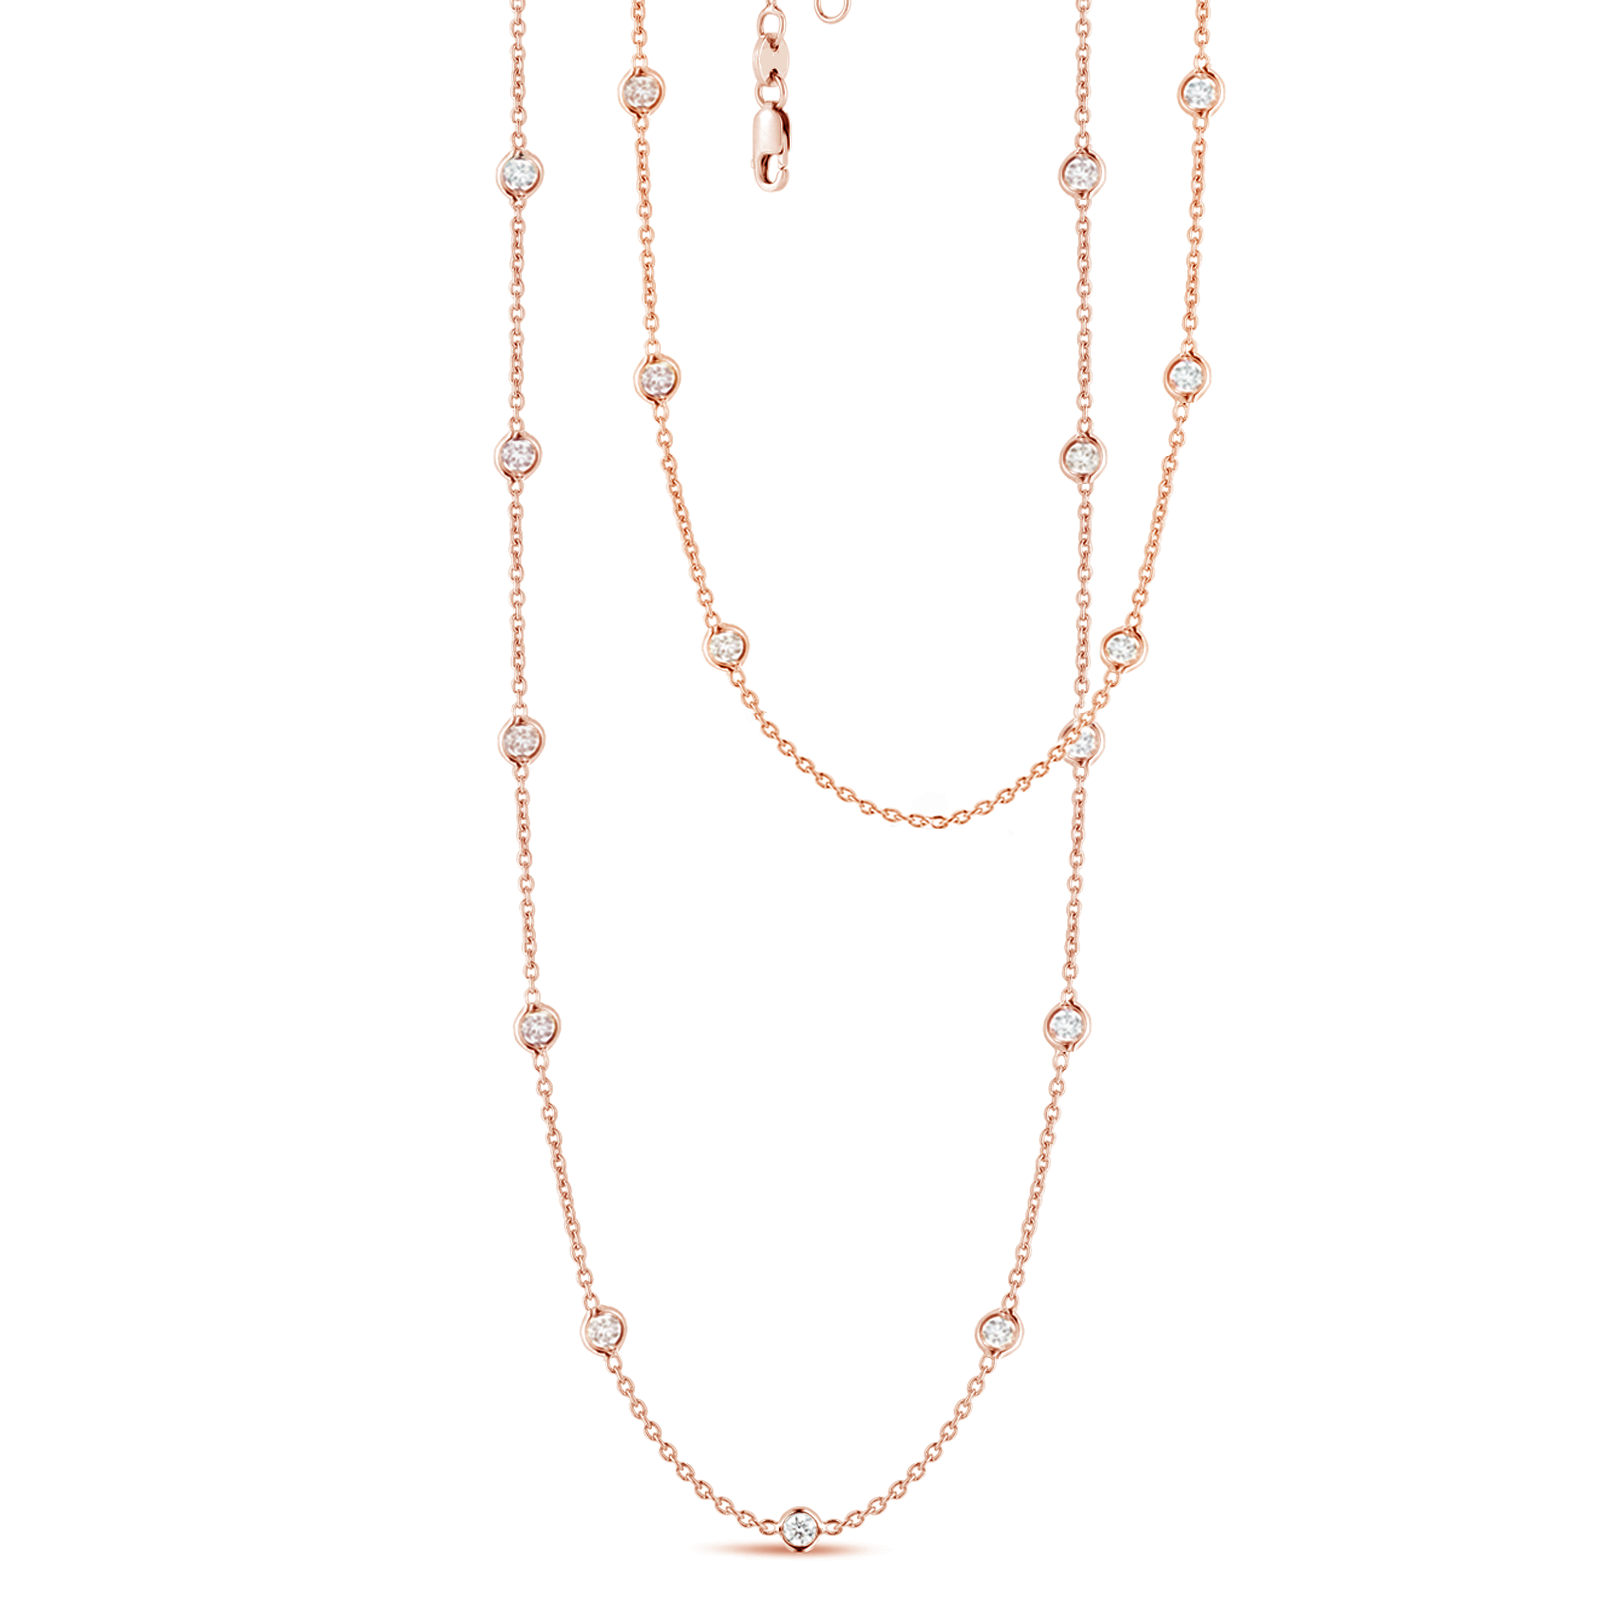 17 Station Classic Bezel Set Chain Necklace, 2.69ctw